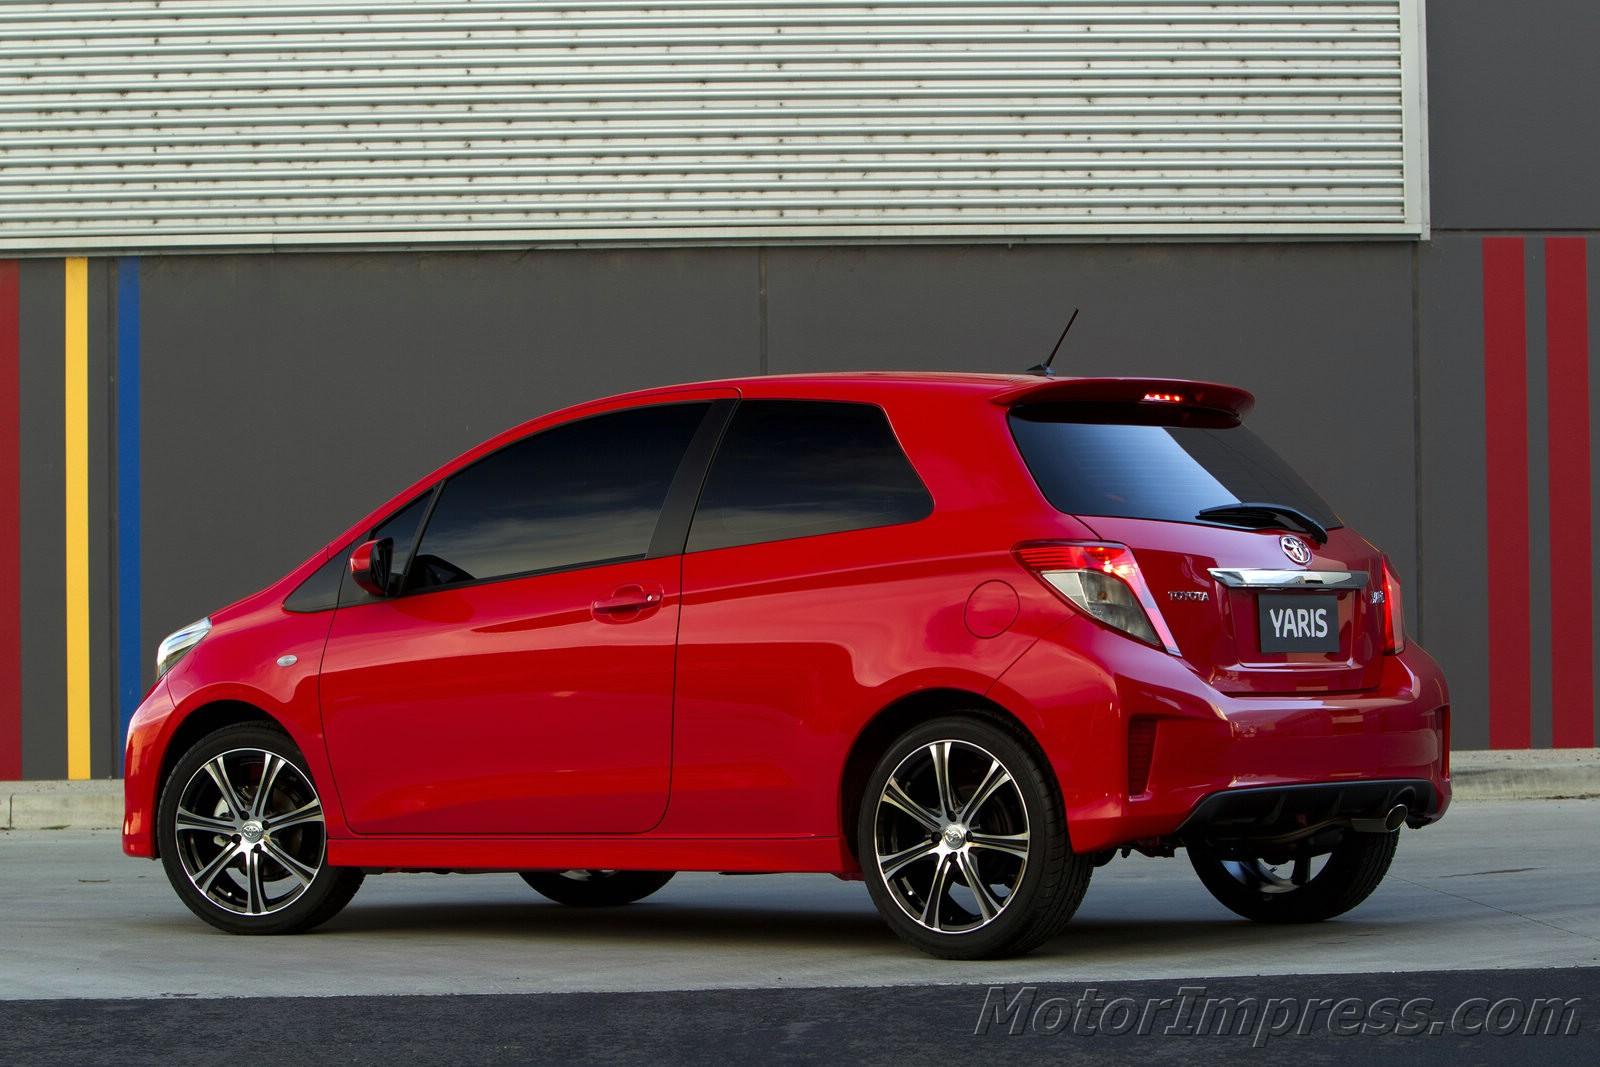 Toyota Yaris photo 11